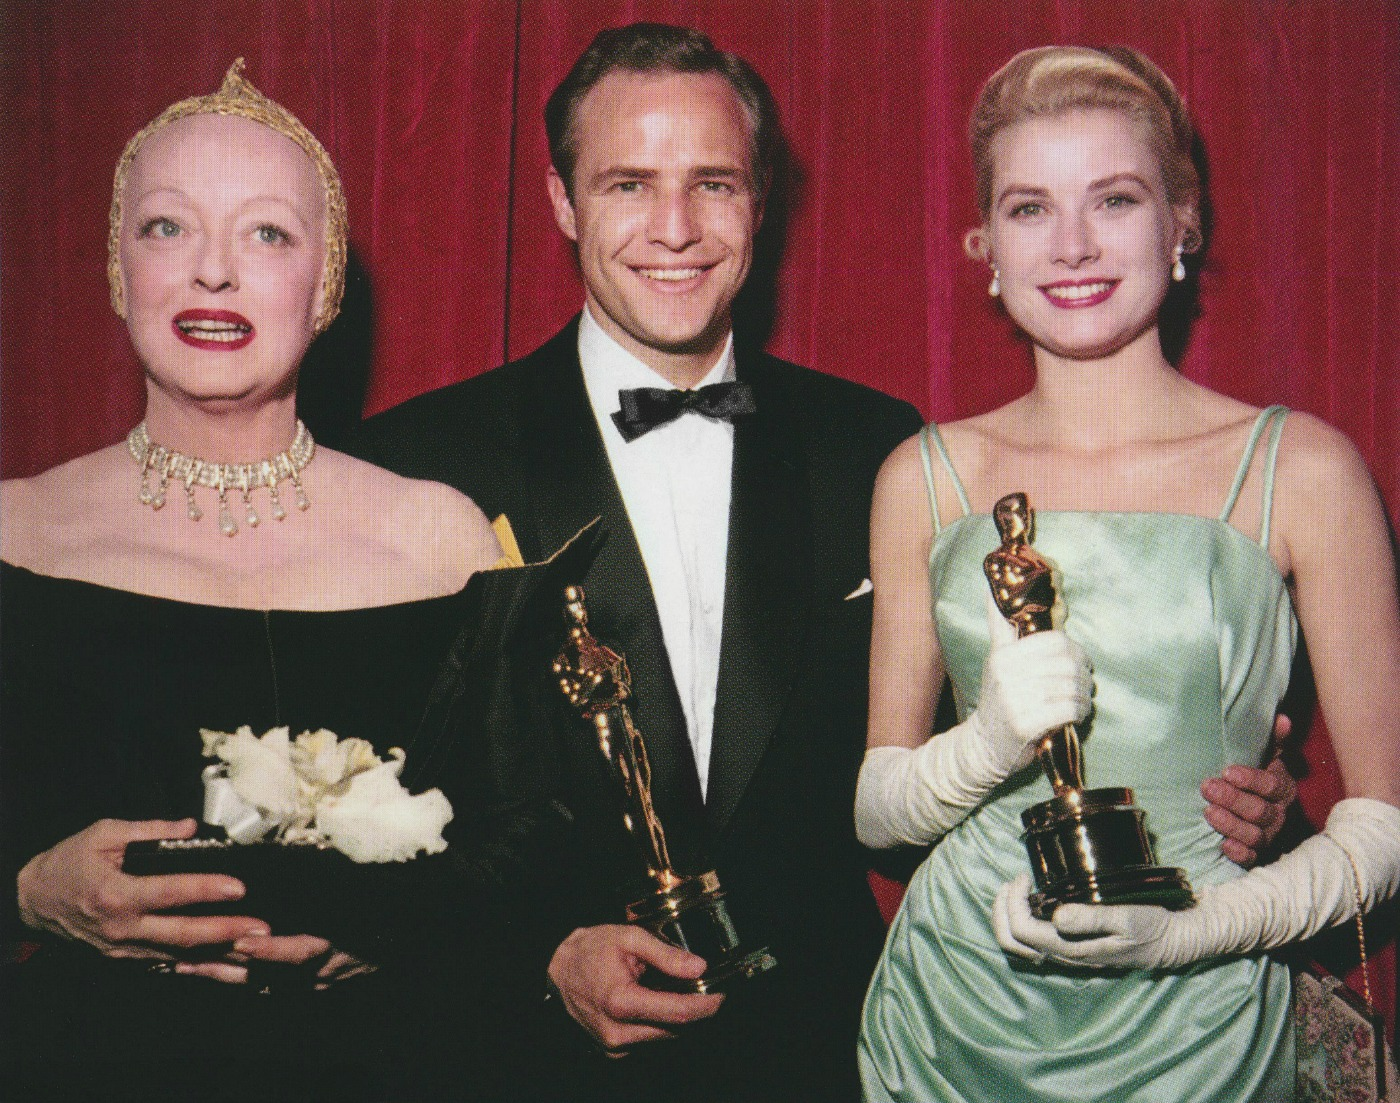 27th Annual Academy Awards Bette Davis presenter, Marlon Brando and Grace Kelly